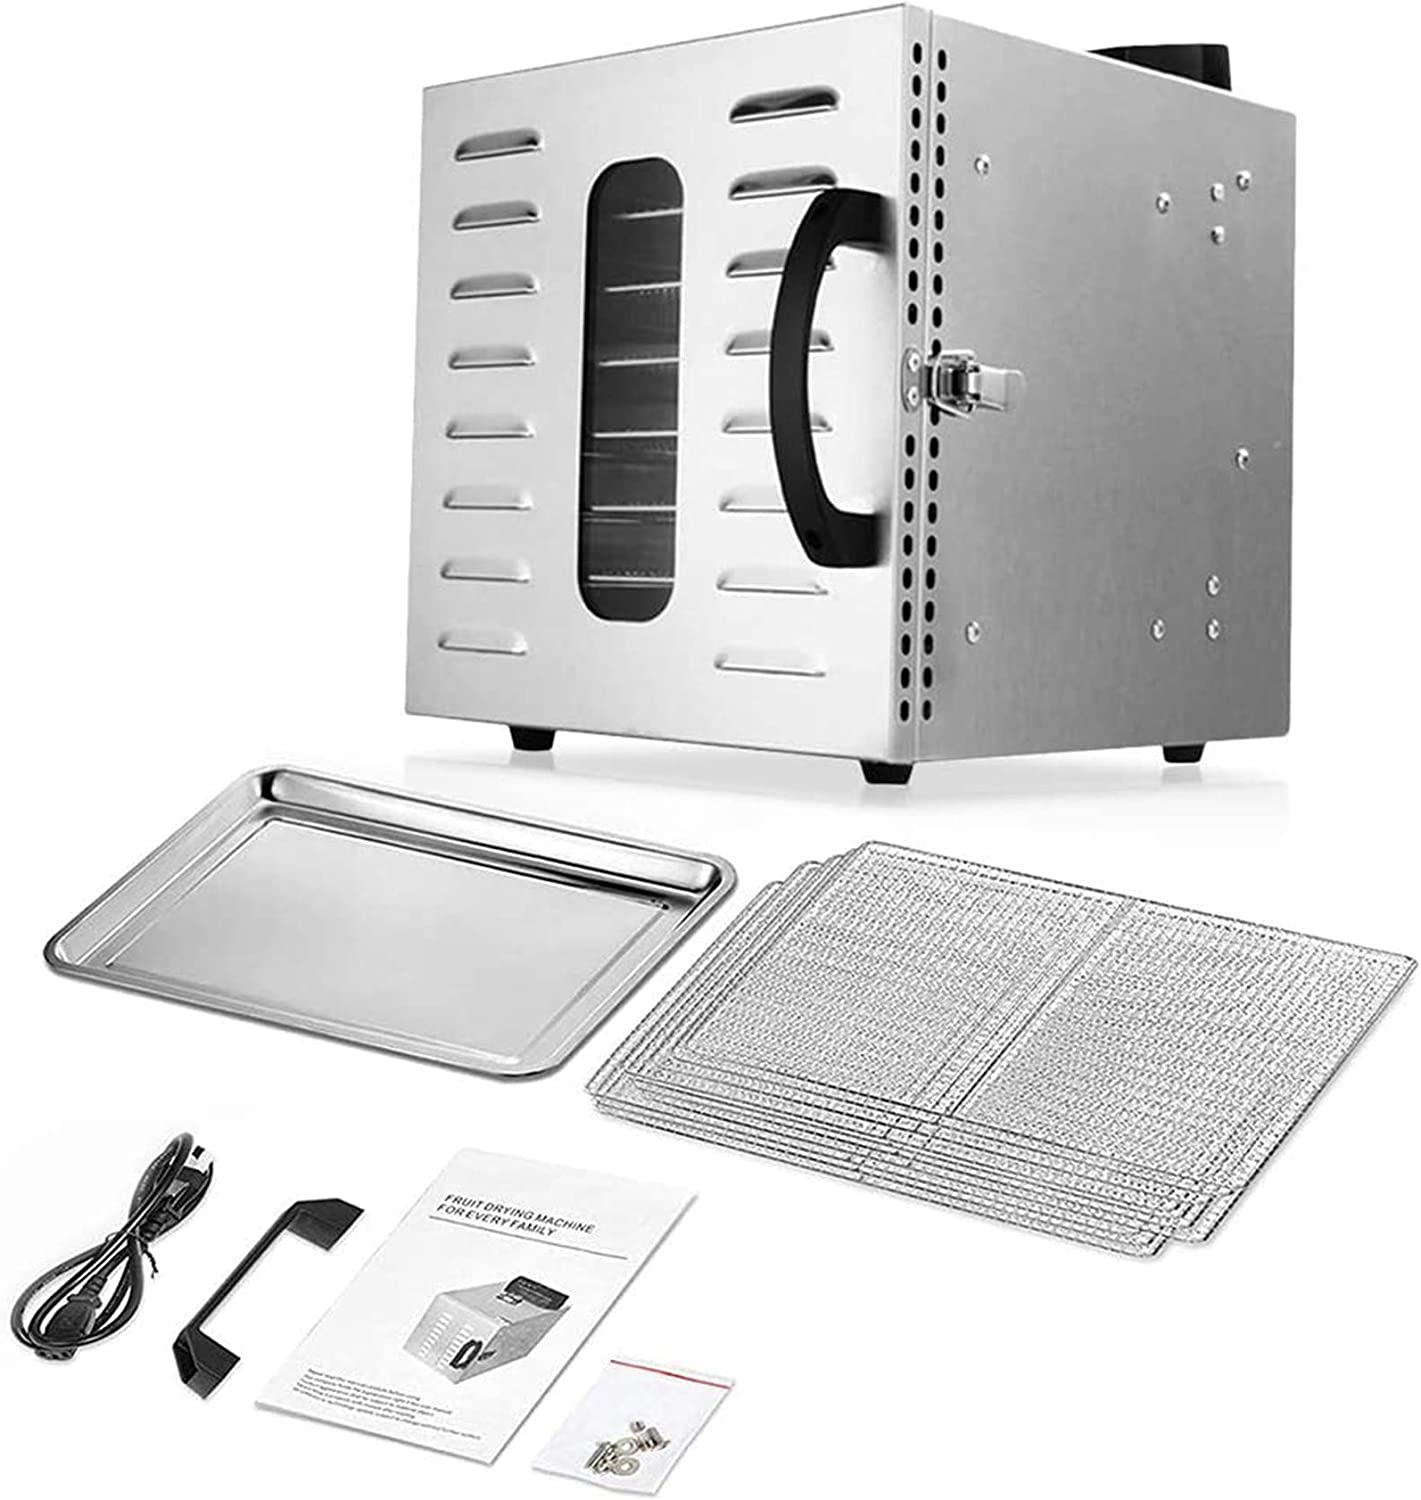 8 Tray Commercial Food Dehydrator Machine Stainless Steel 400w Digital Adjustable Timer and Temperature Control Dryer for Jerky, Herb, Meat, Beef, Fruit and To Dry Vegetables